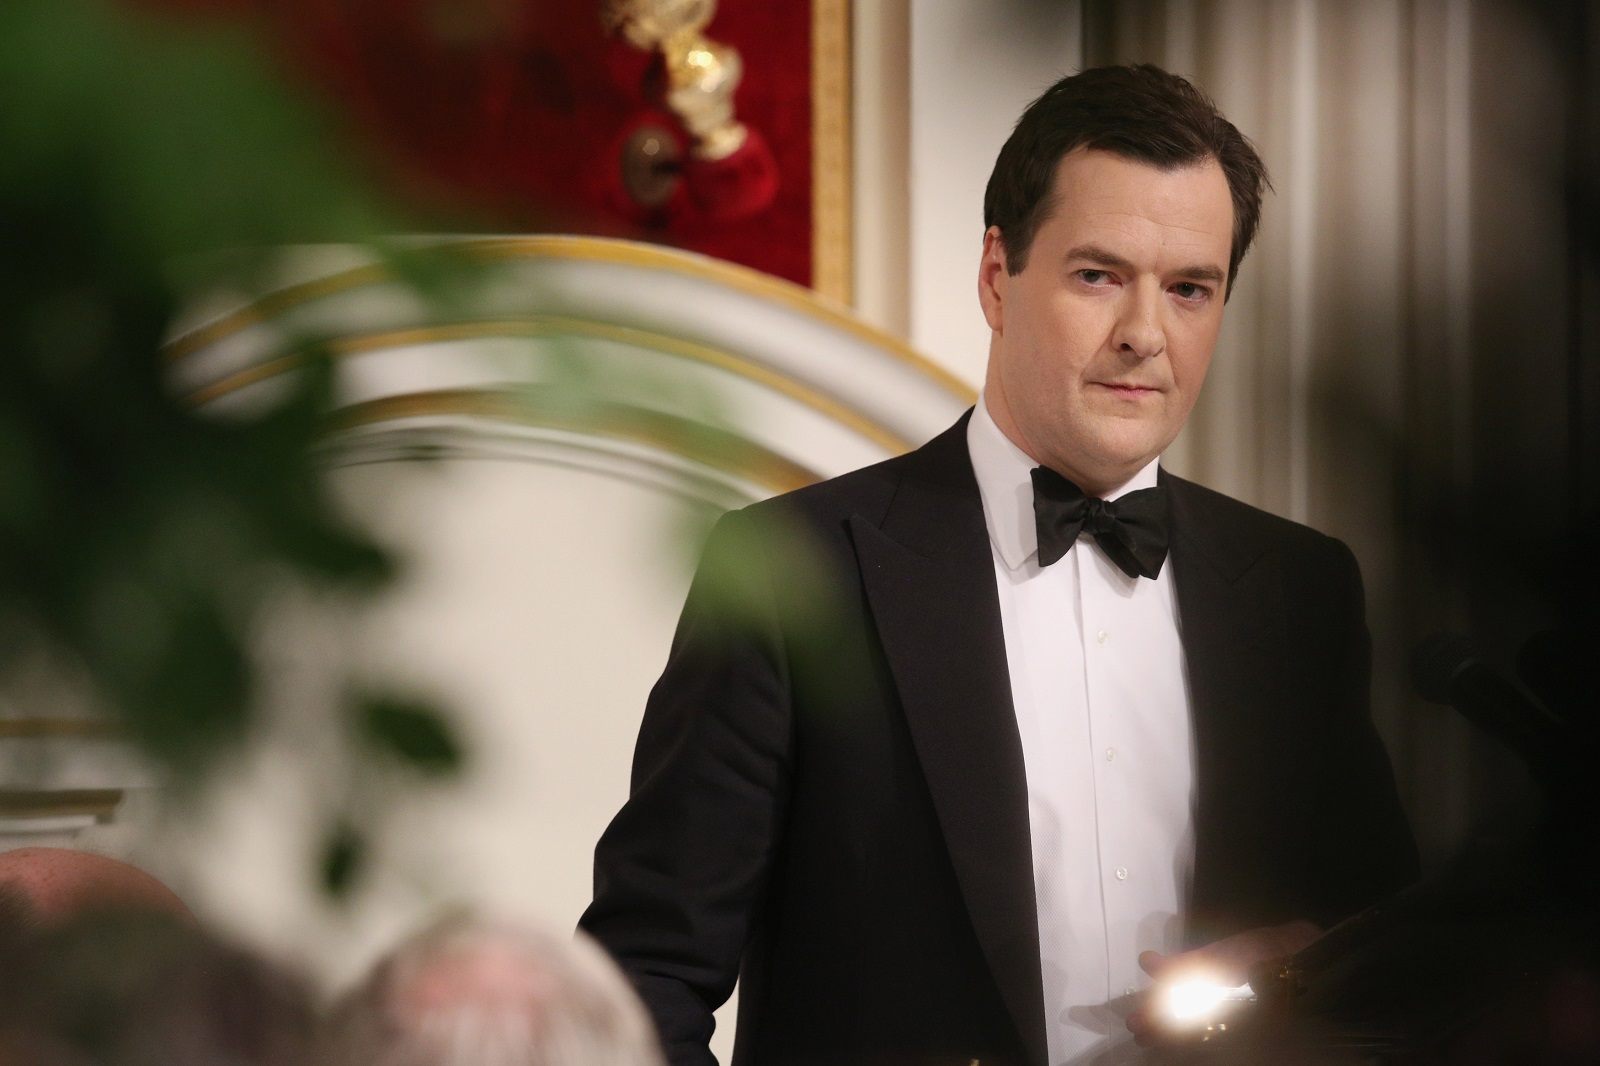 George Osborne during the Mansion House speech